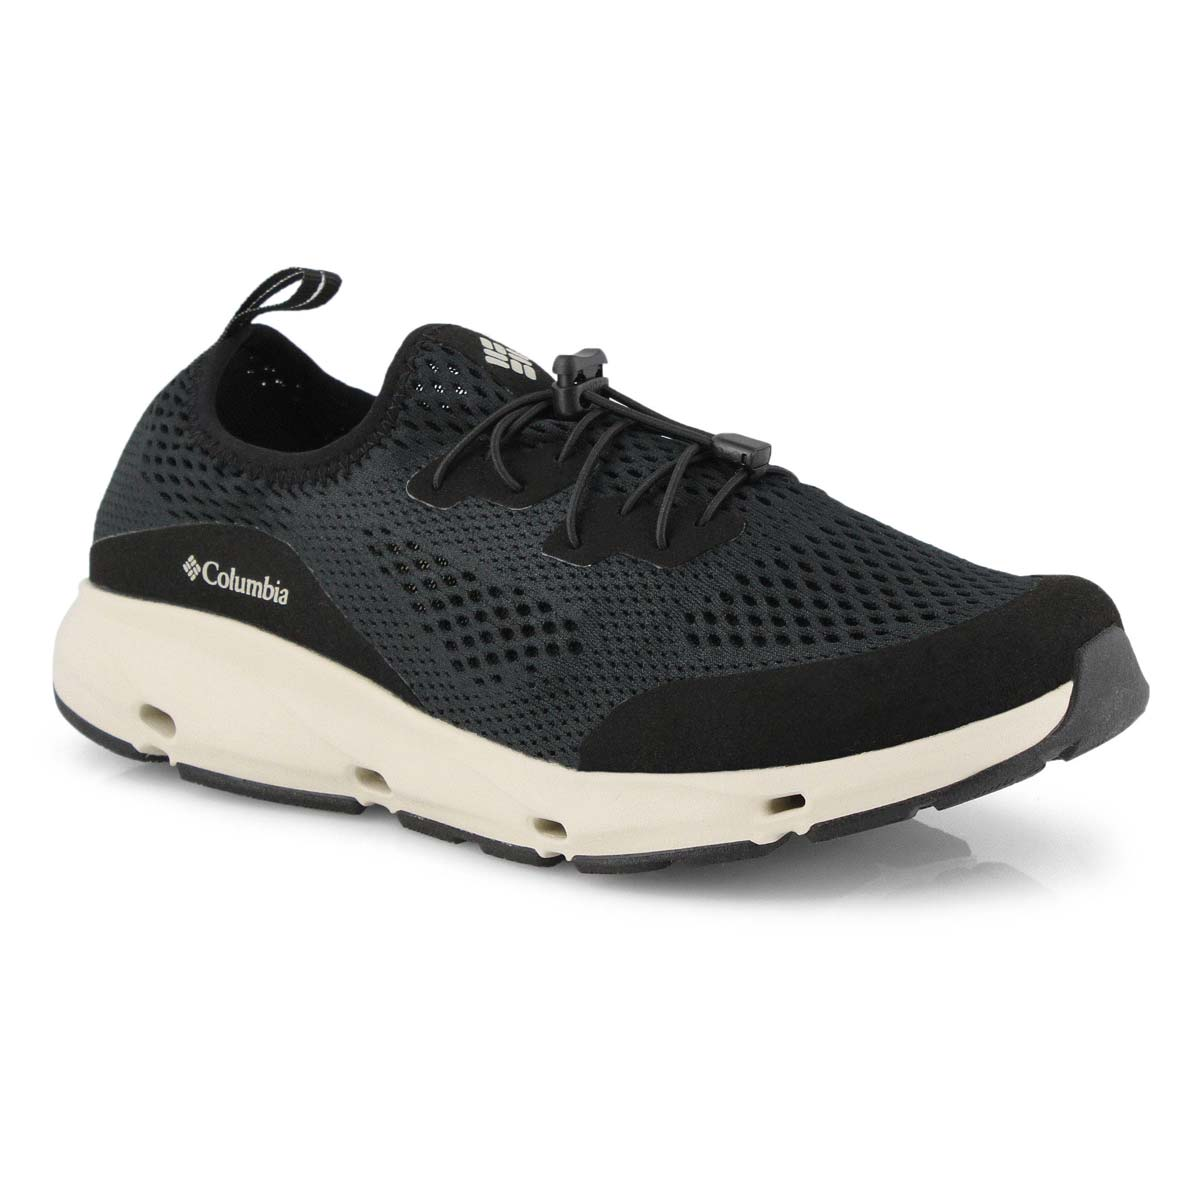 Lds Columbia Vent black fashion sneaker